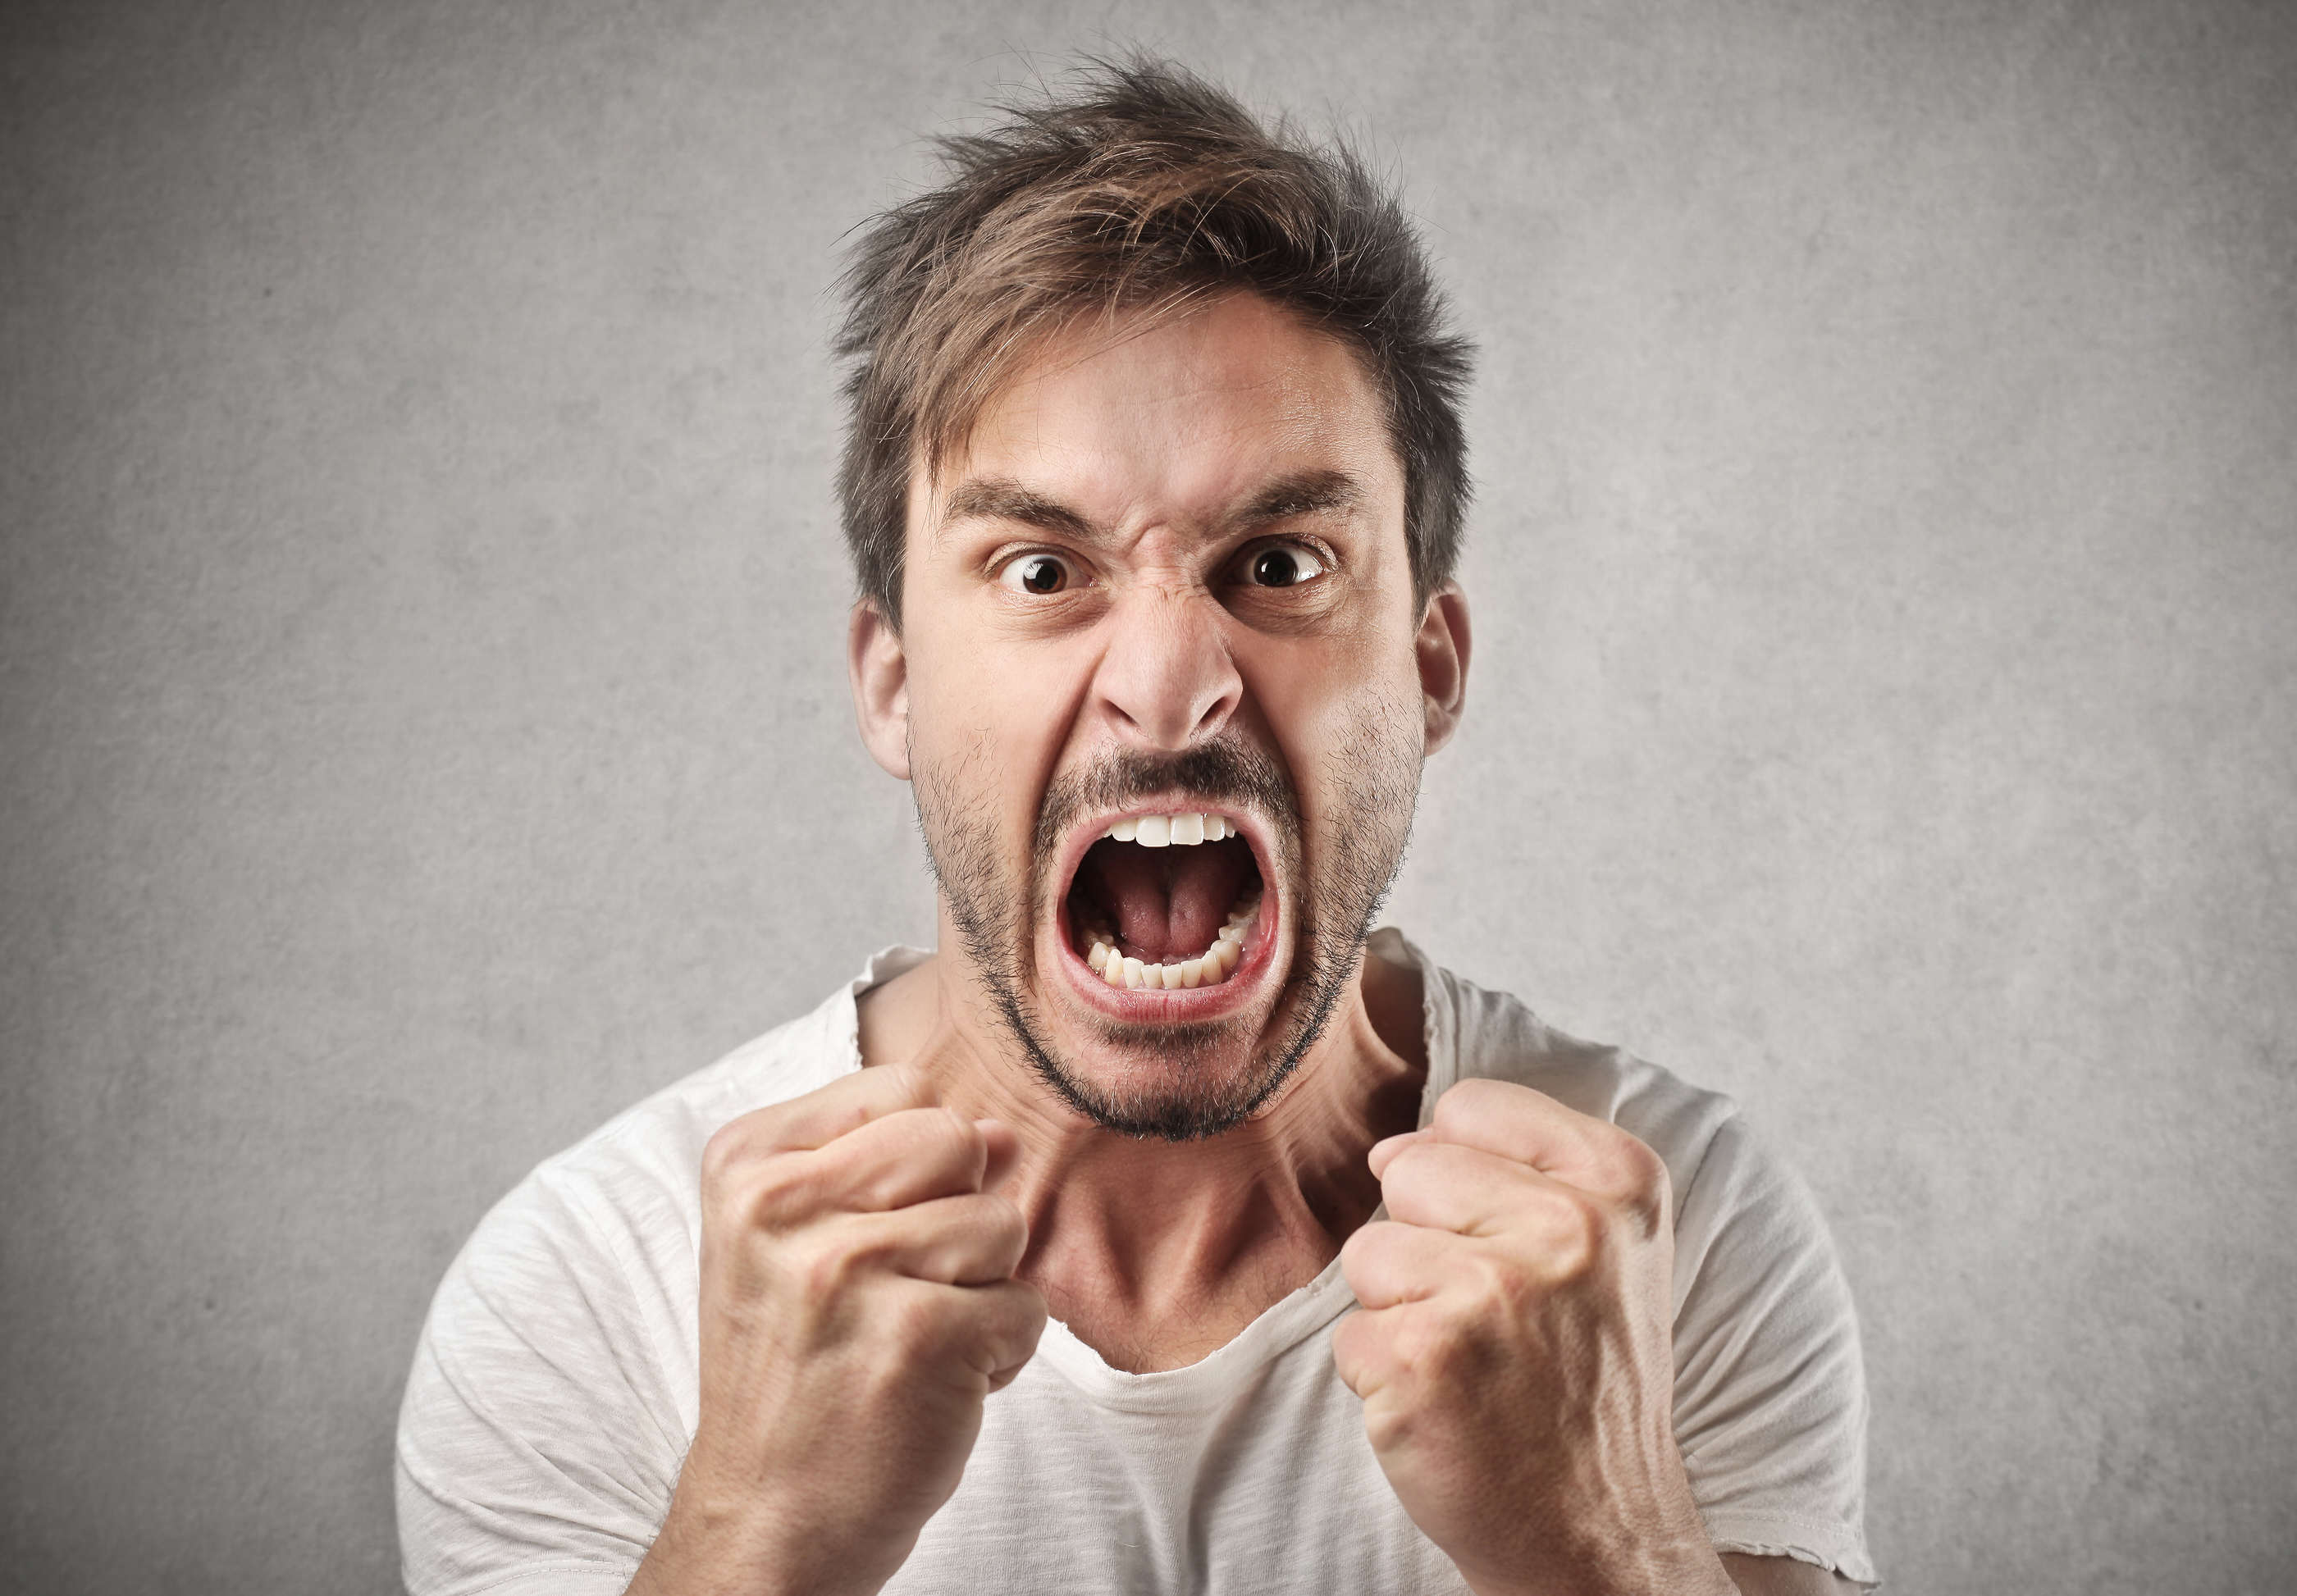 Man Finds Out Best Mate Is Dating His Ex Fiancée, Takes Cruel Action bigstock portrait of young angry man 52068682 1